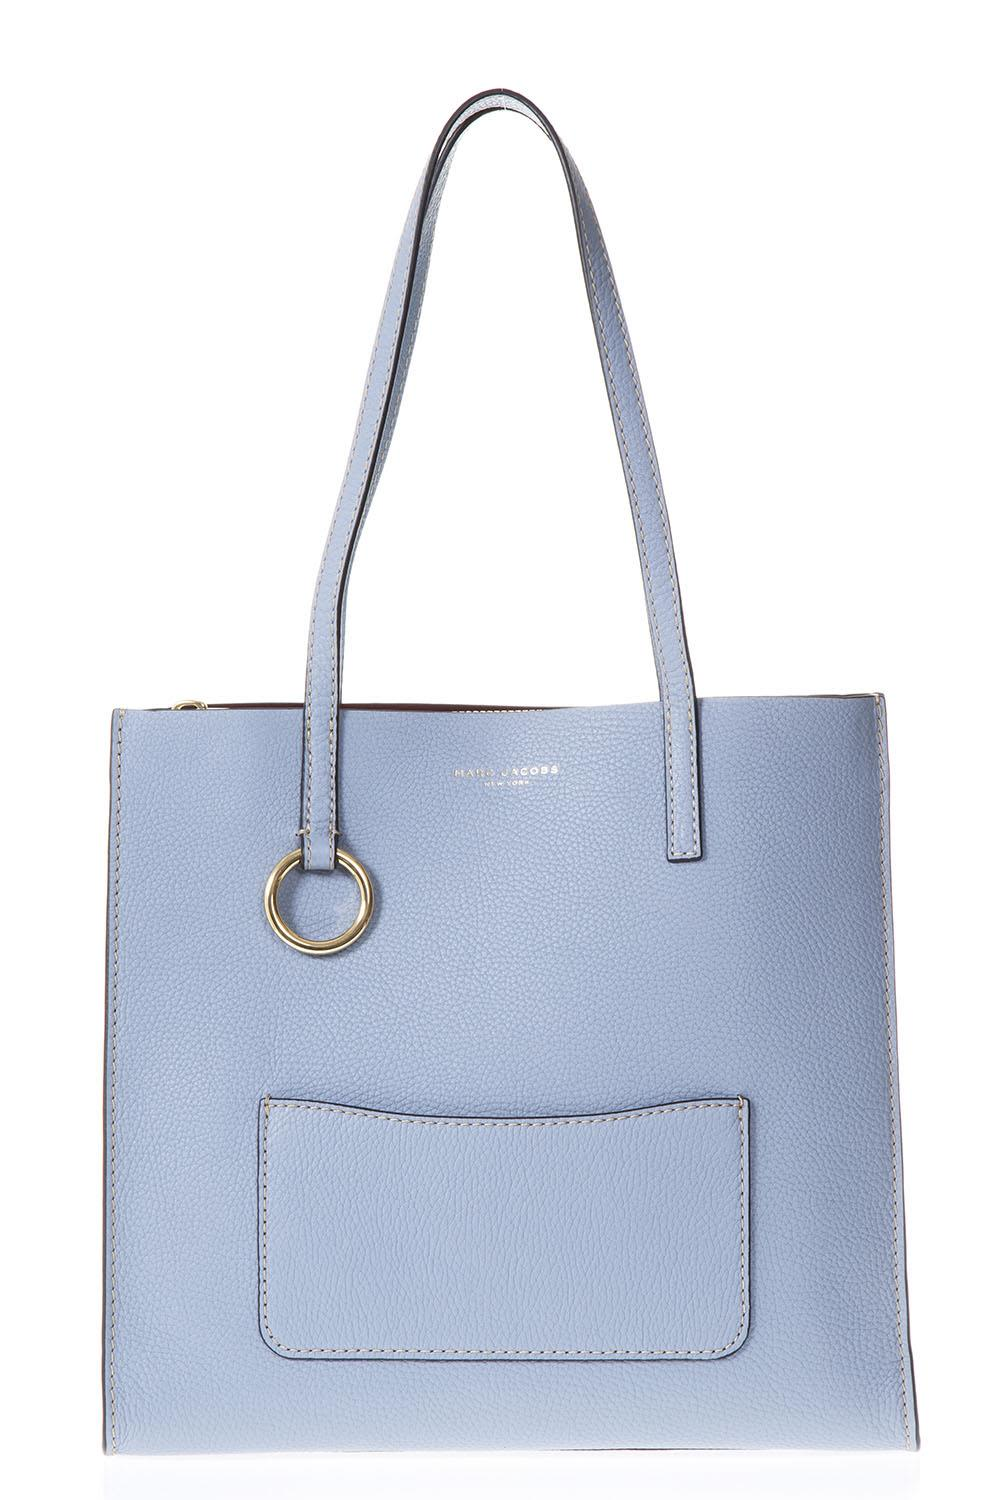 Marc Jacobs Blue Leather Shopping Bag